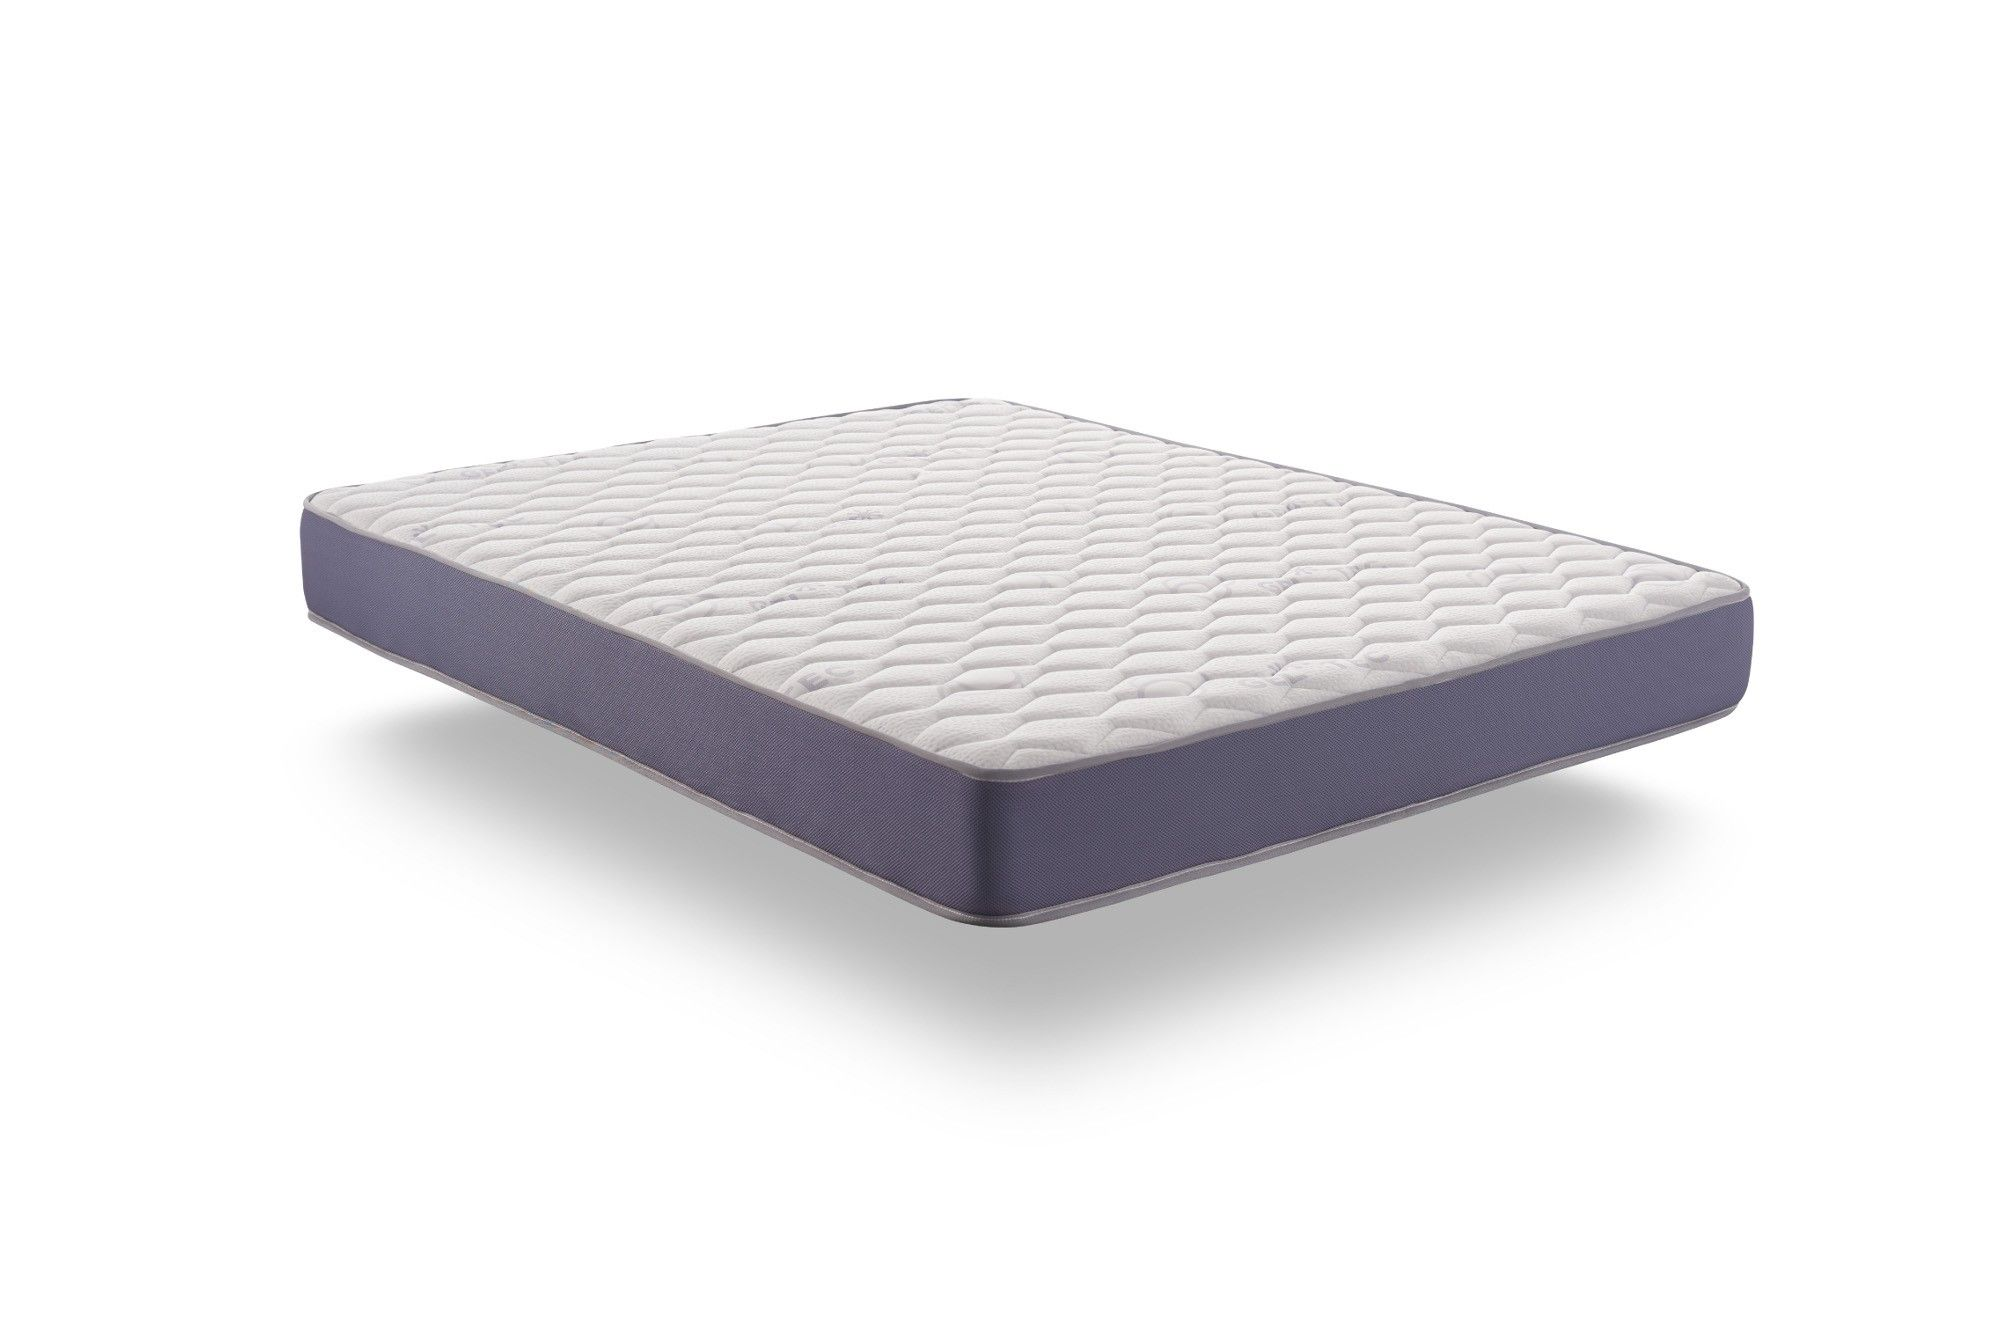 The winter side with a layer of the new Memofresh v60 memory foam maintains an ideal temperature when the body is in contact with the mattress.